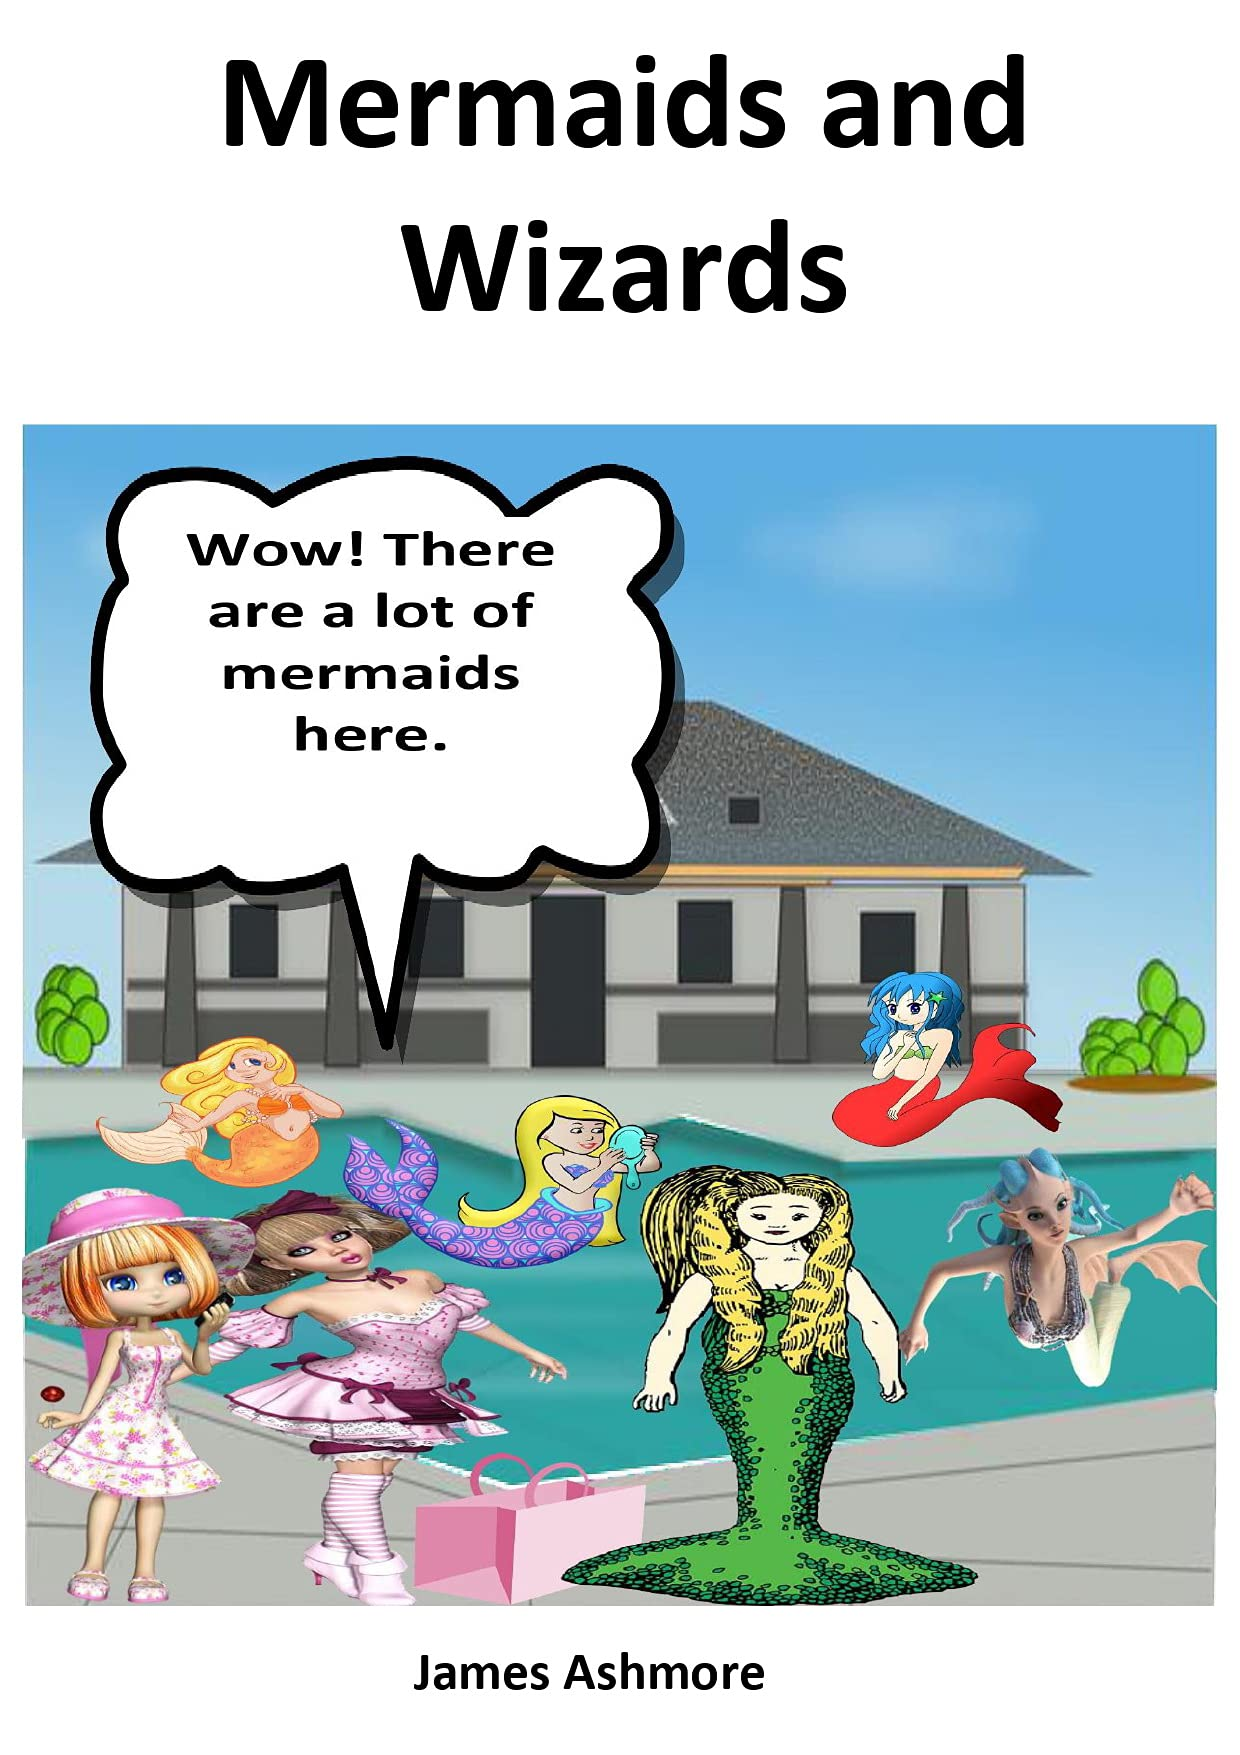 Mermaids and Wizards: Reading books, Kindergarten, Preschool, Nursery, Grade 1, Year 1, 1st Graders. Ages 3-5 and 6-8 level 1 books for learning. Children and kids books / readers with no rhymes.